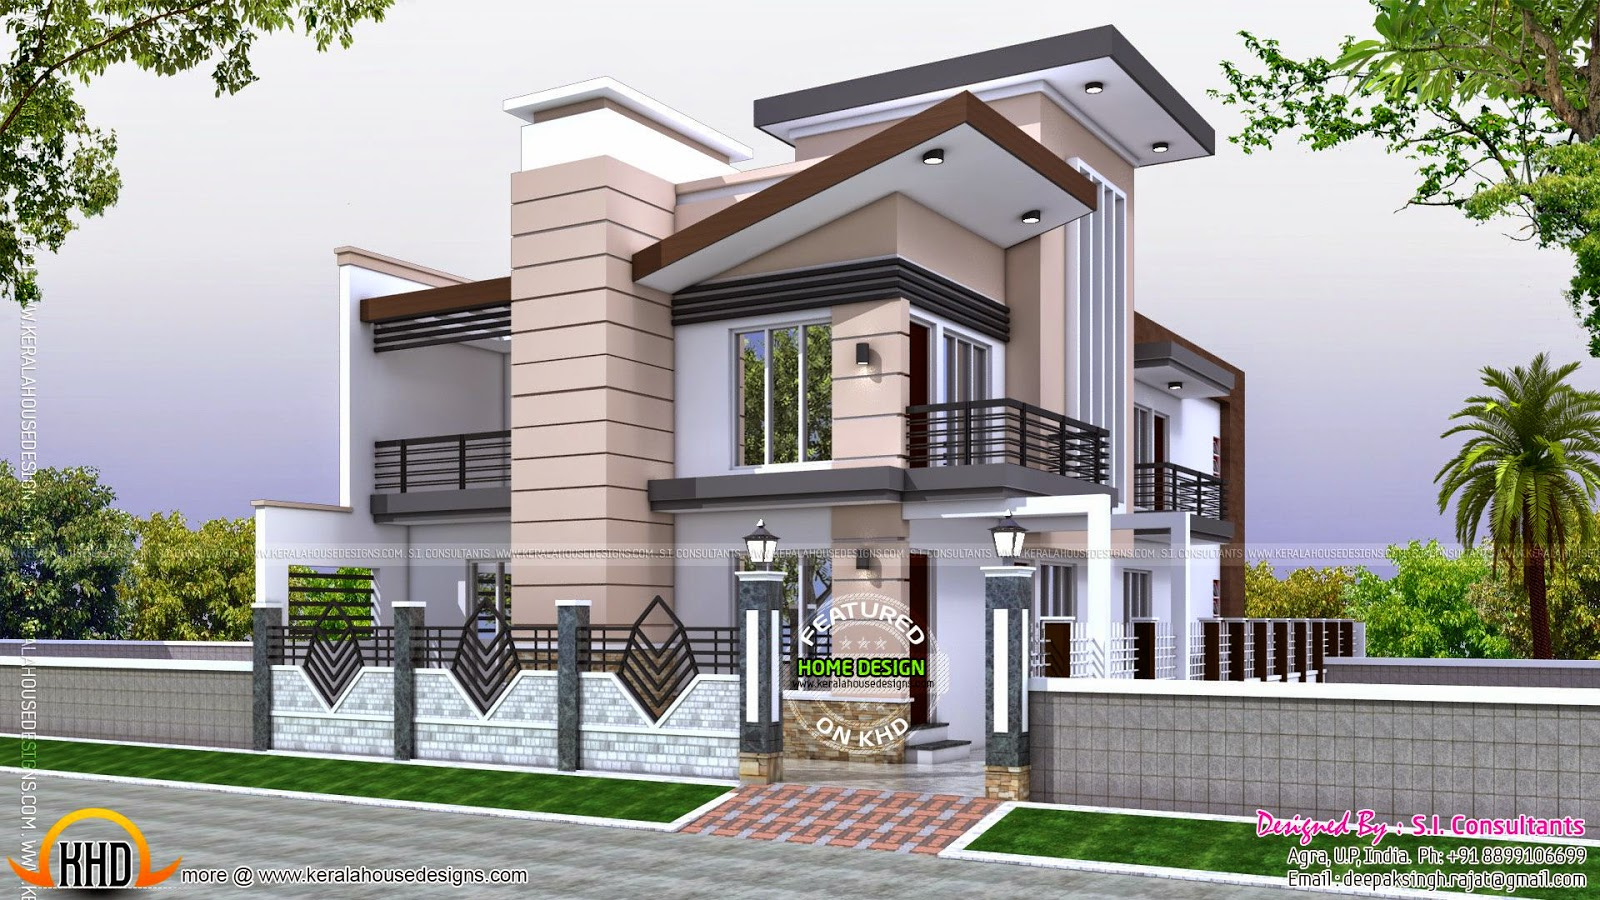 December 2014 kerala home design and floor plans for 2 bedroom house designs in india